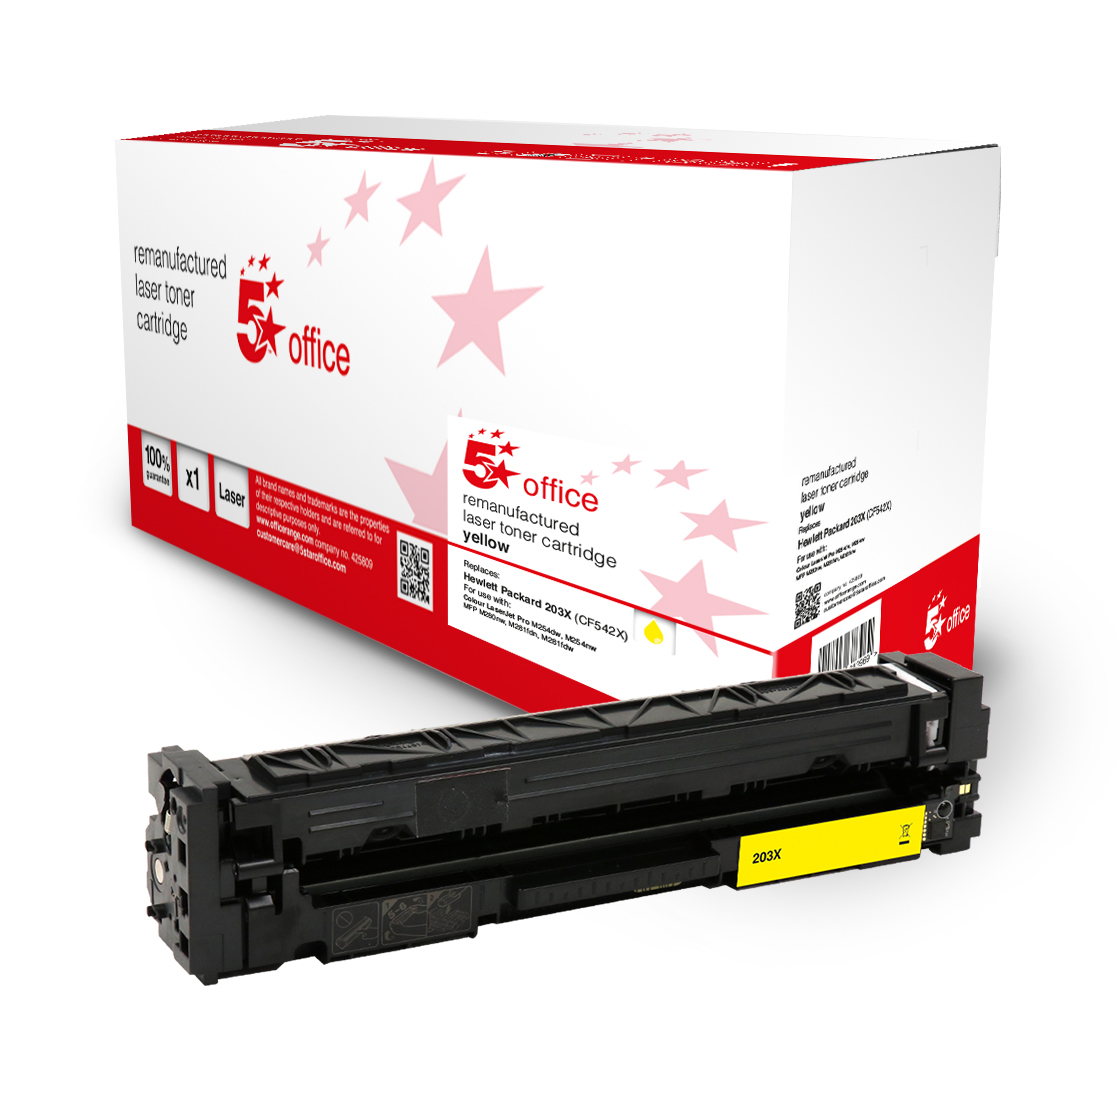 Laser Toner Cartridges 5 Star Office Remanufactured Toner Cartridge Page Life Yellow 2500pp HP 203X CF542X Alternative